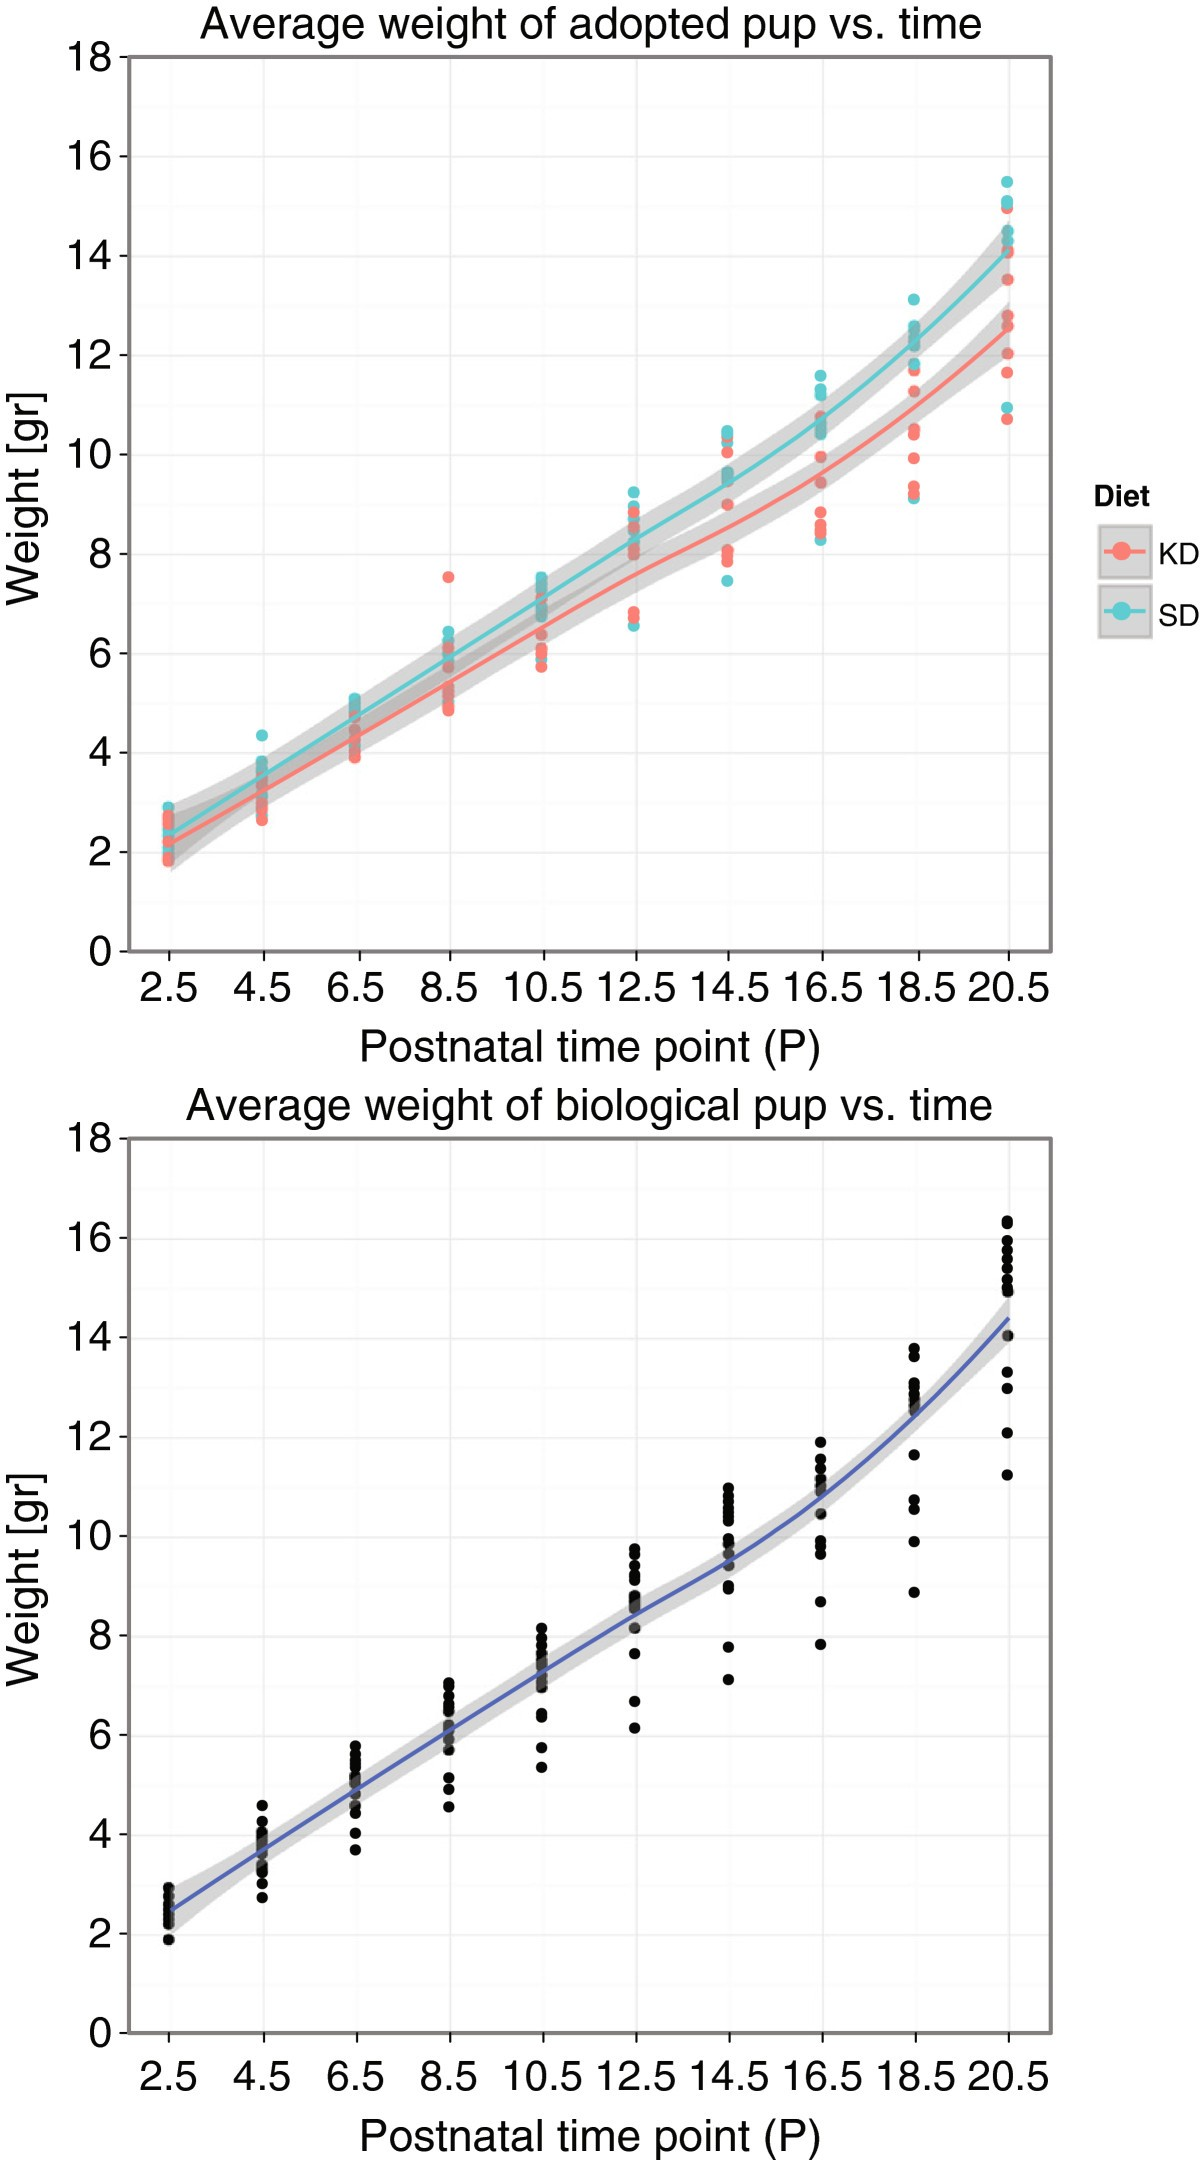 A Gestational Ketogenic Diet Alters Maternal Metabolic Status As 1983 Ford F 150 300 Wiring Diagram Physiological Growth Of Adopted Pups